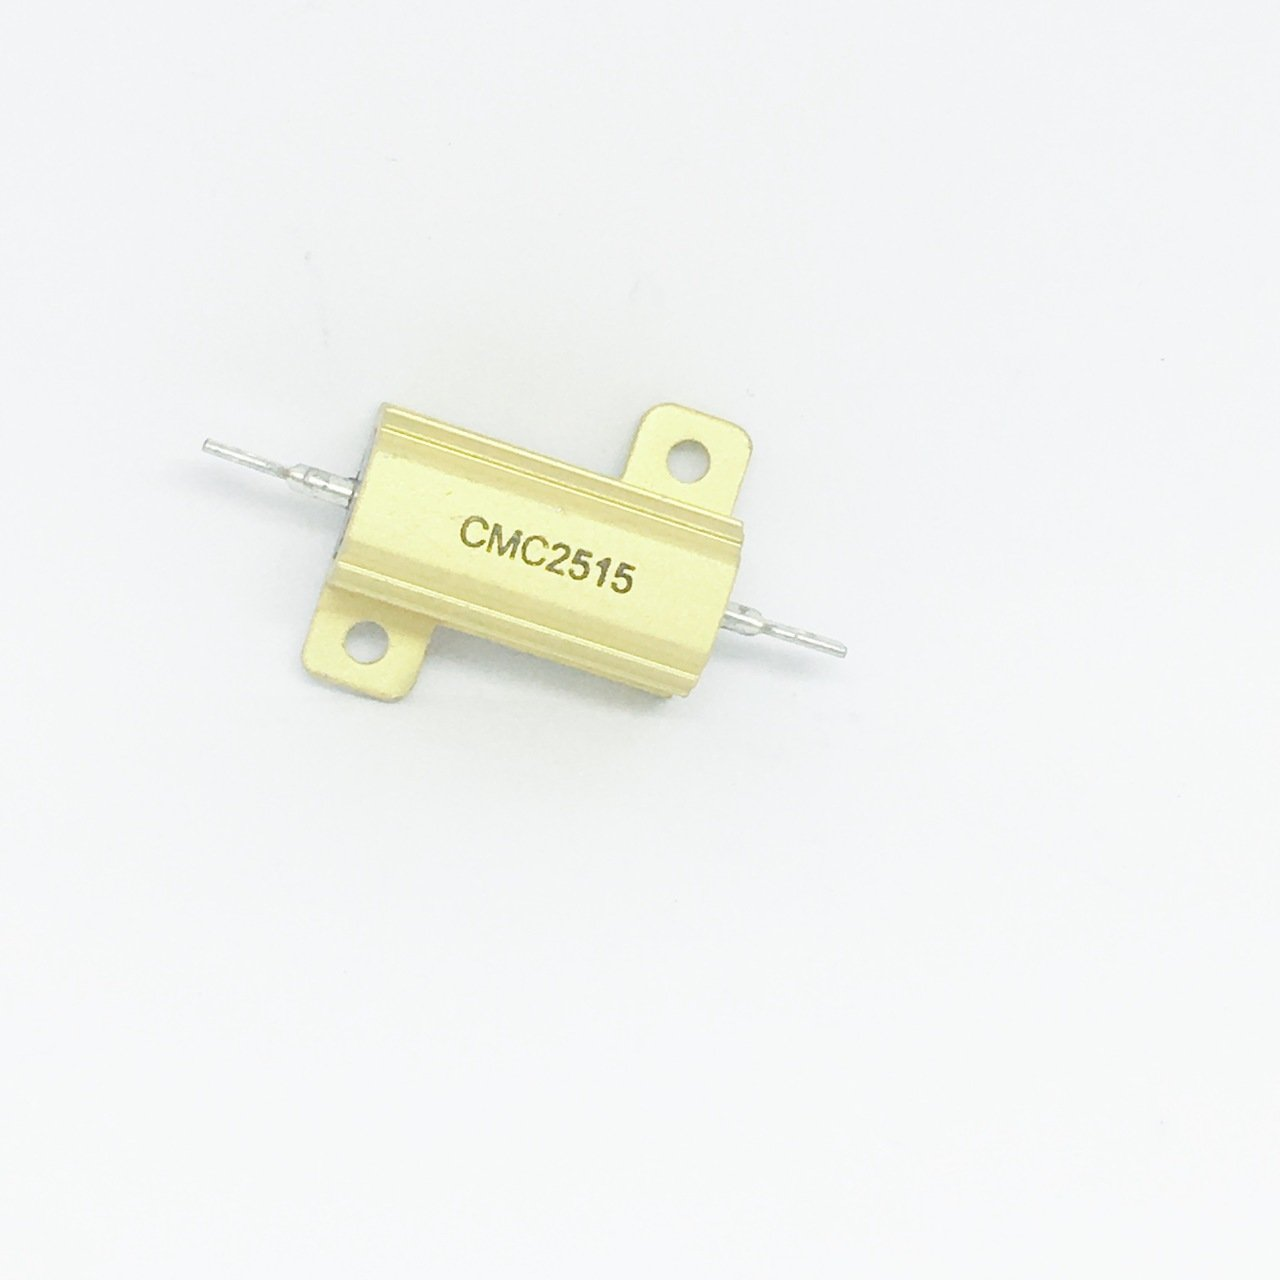 CMC25750 - HONEYWELL SENSING AND CONTROL - RES WIREWOUND 750 OHM 1% 25W ±20ppm/°C ALUMINUM HOUSED AXL FLANGE MOUNG